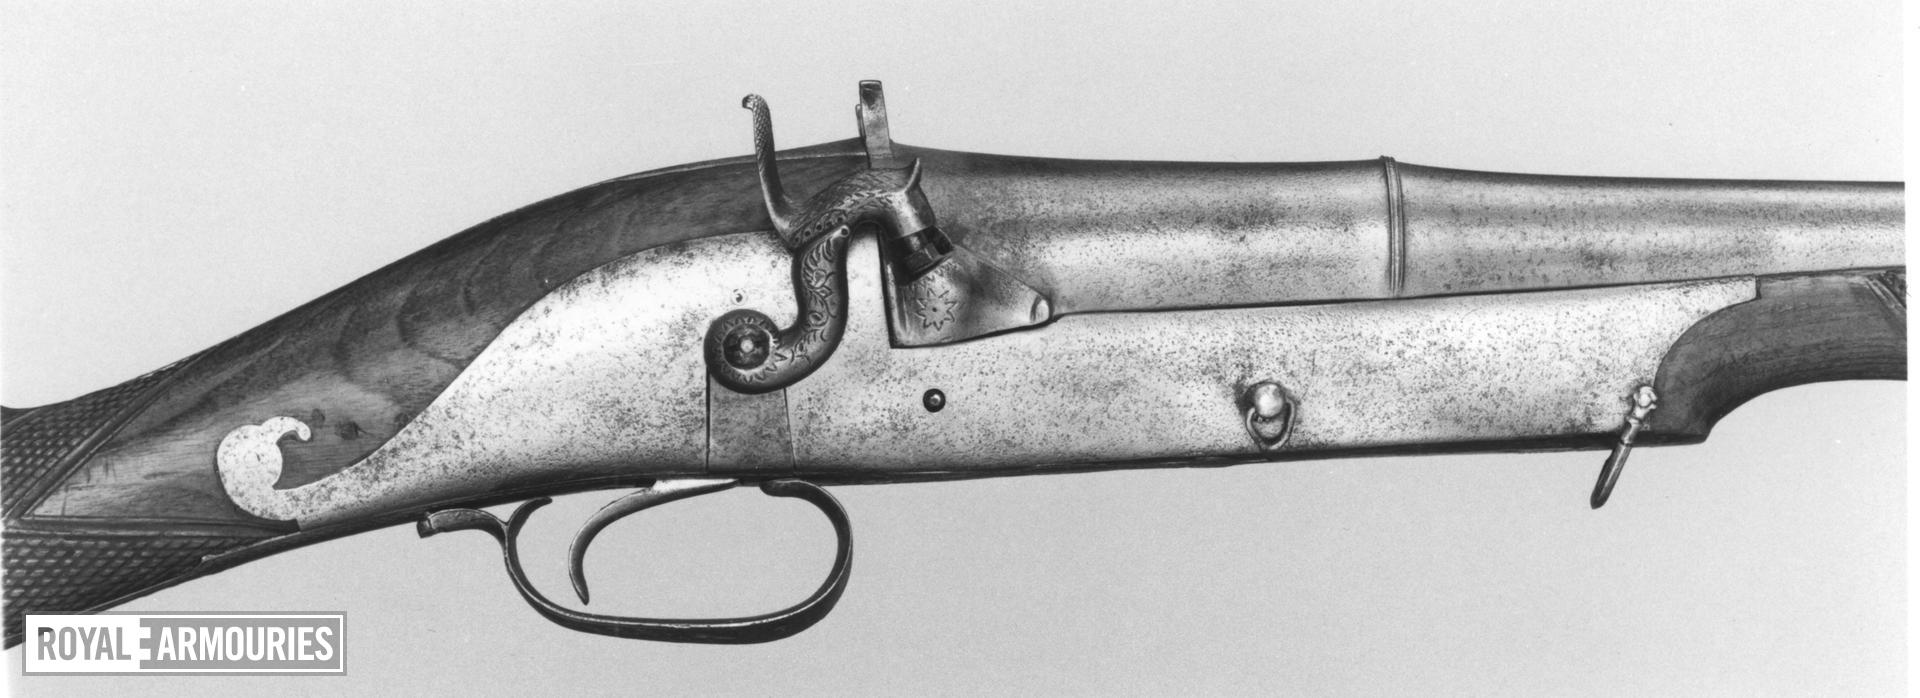 Percussion sporting gun with traditional barrel.